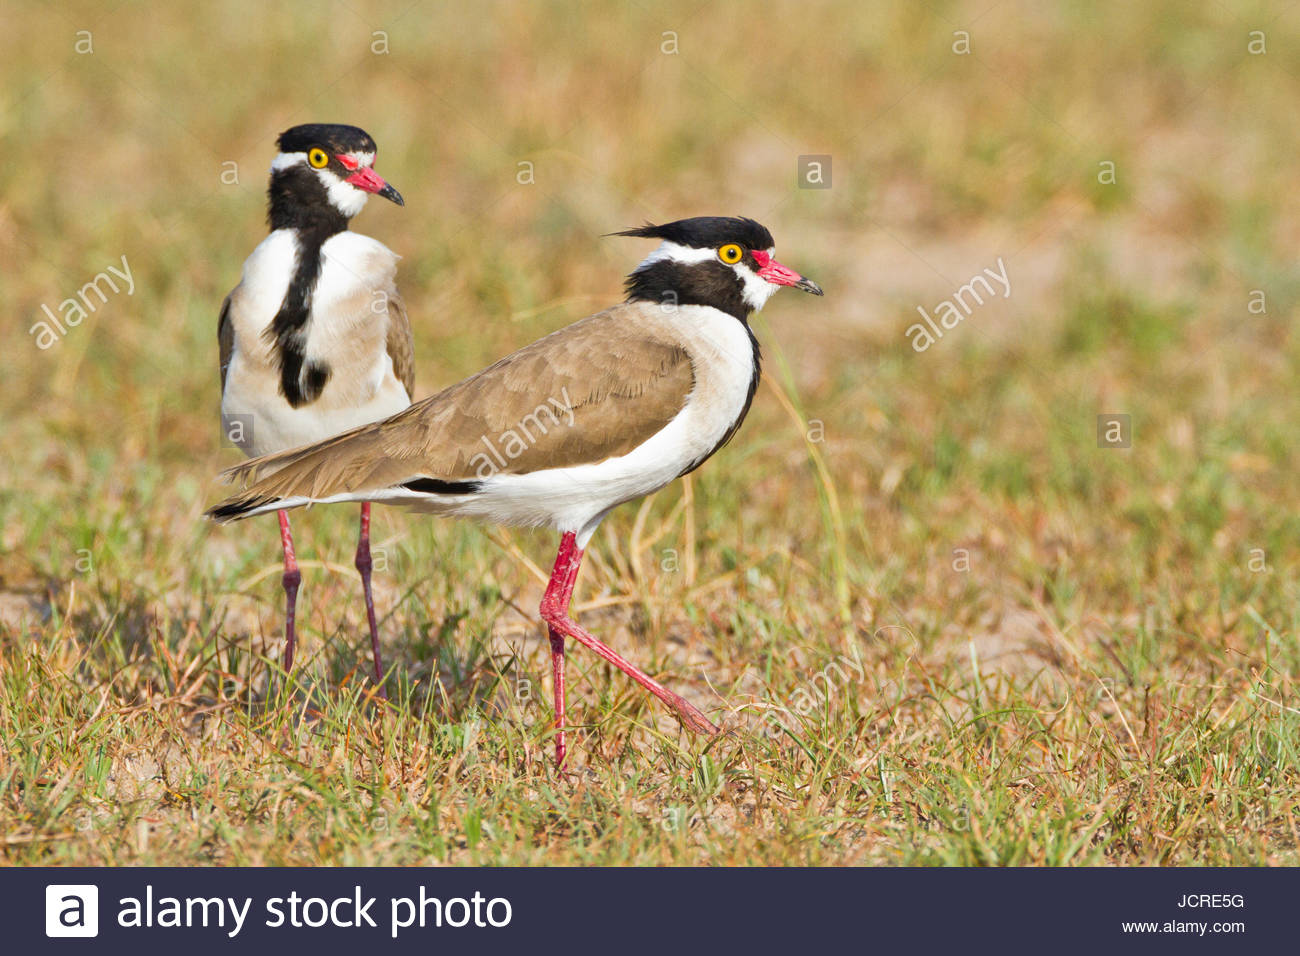 Two black-headed lapwing, Vanellus tectus, at Murchison Falls National Park. - Stock Image